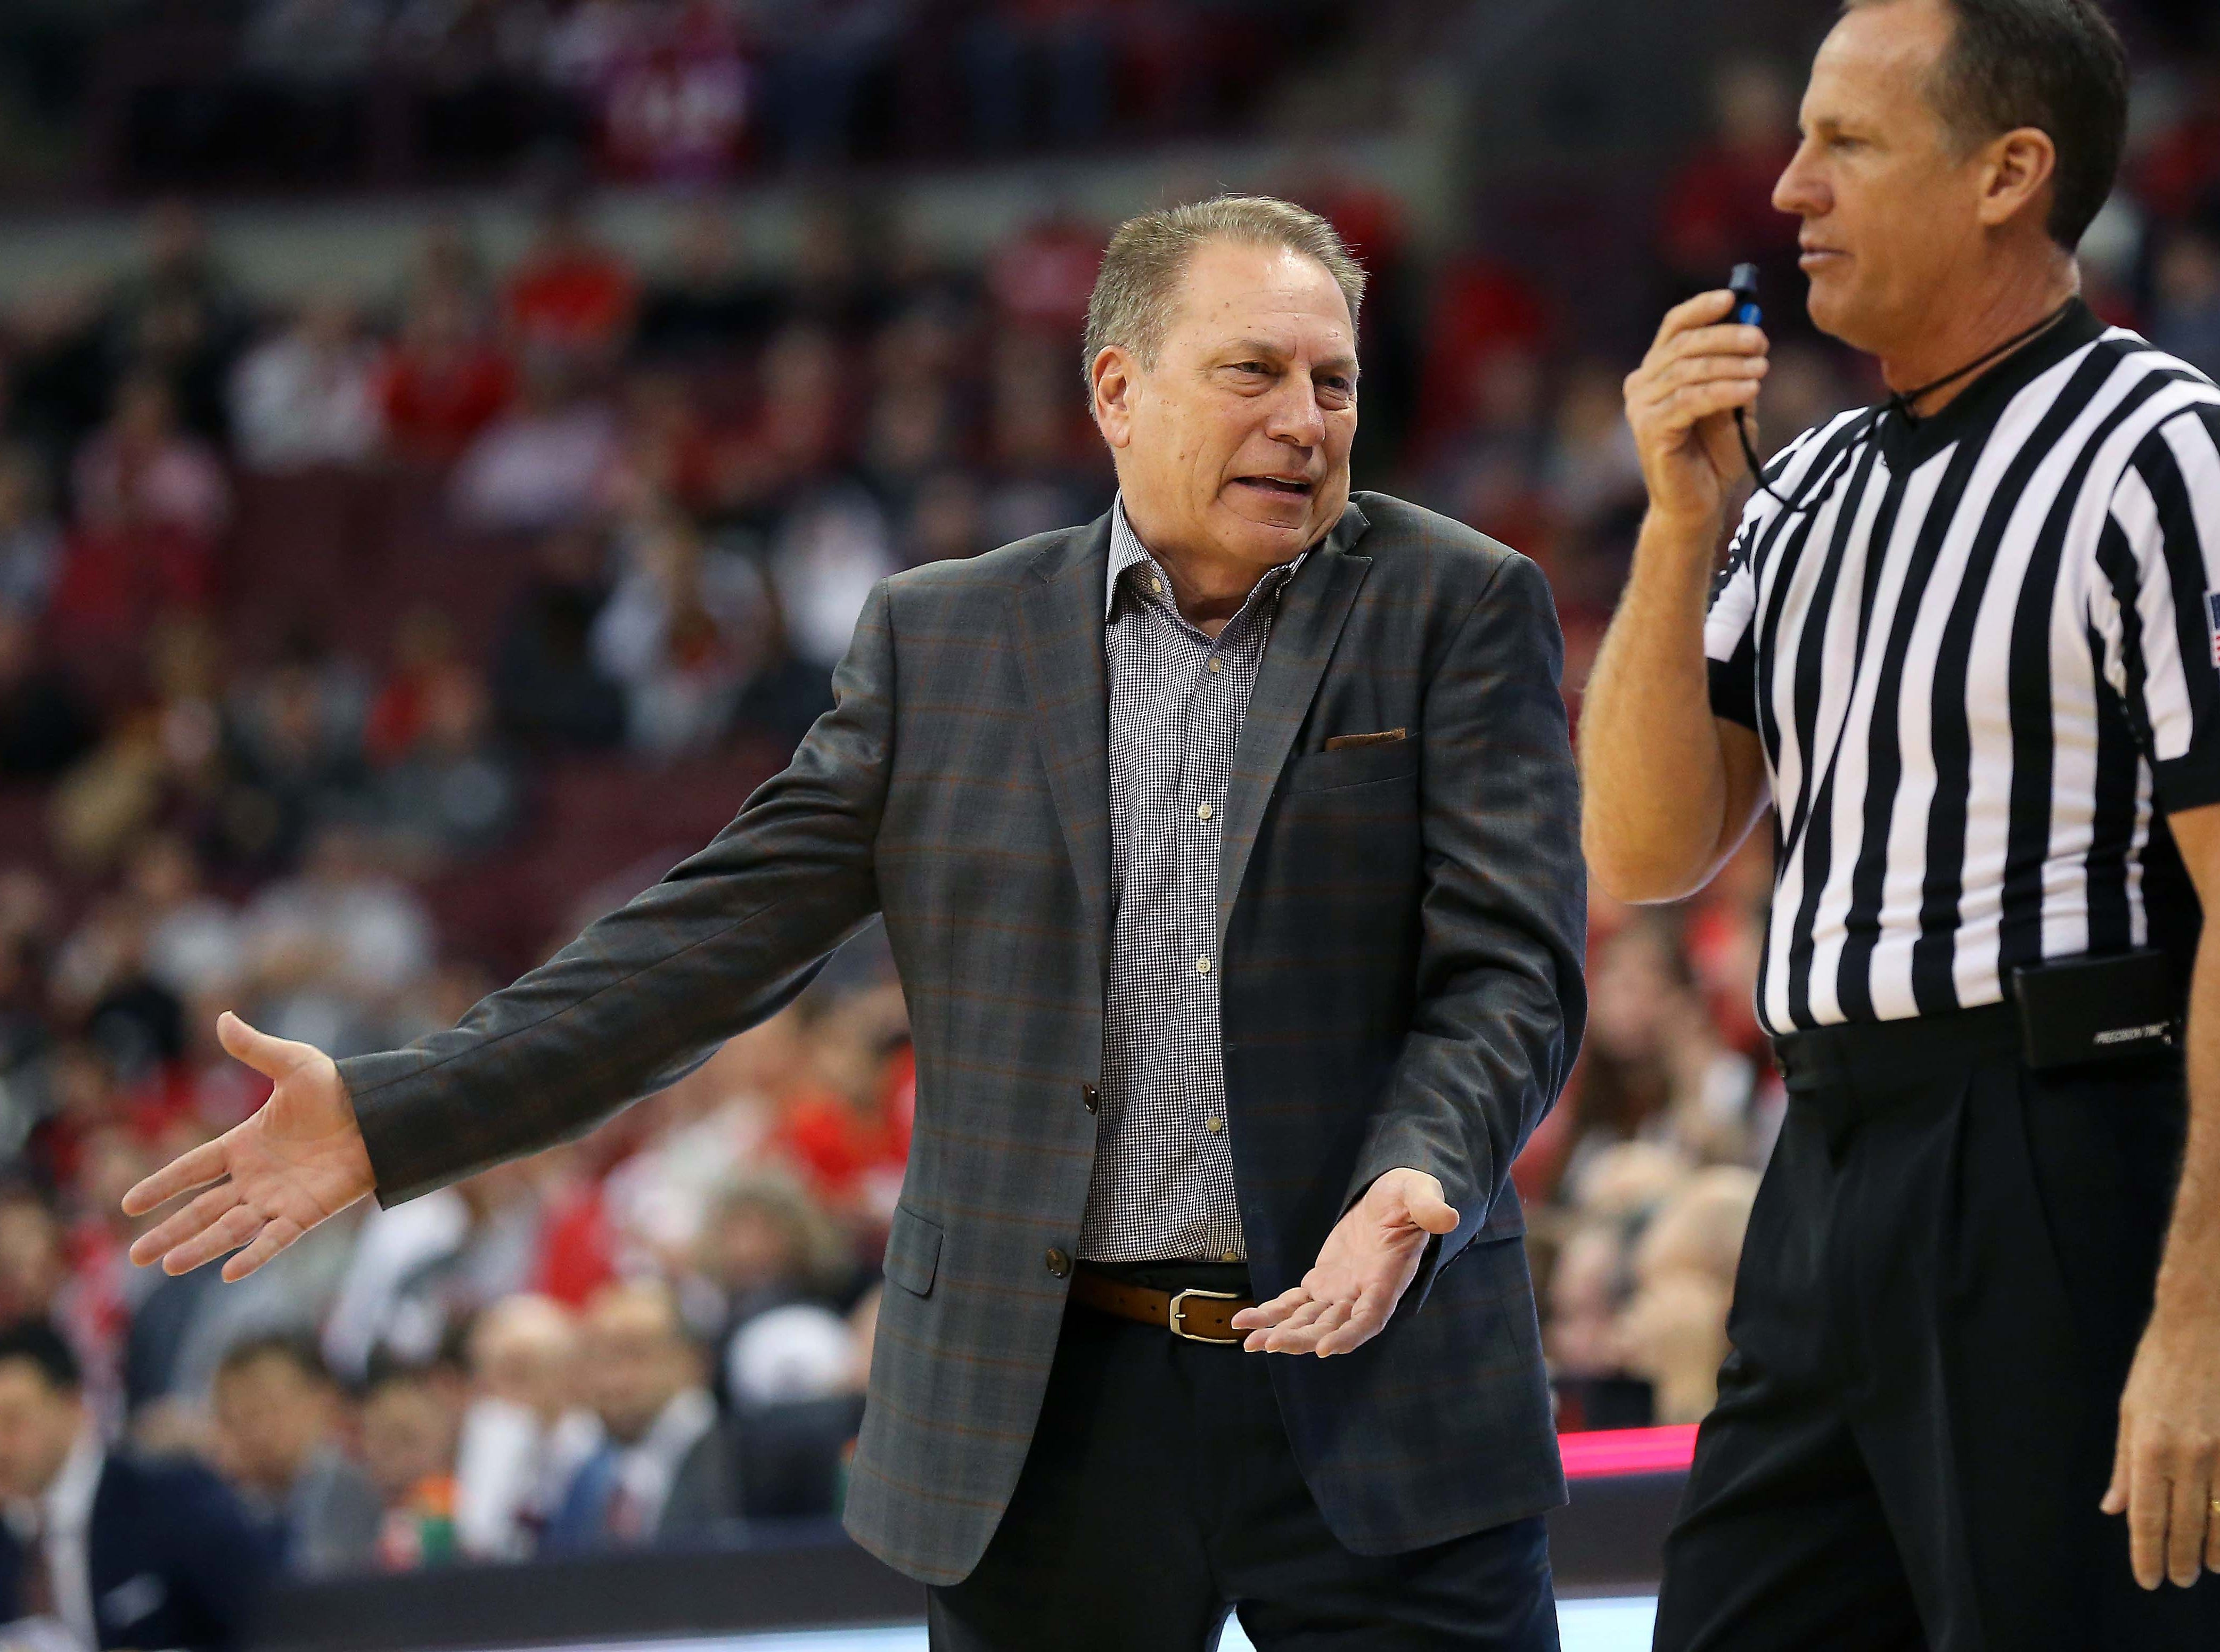 Jan 5, 2019; Columbus, OH, USA; Michigan State Spartans head coach Tom Izzo during the first half against the Ohio State Buckeyes at Value City Arena. Mandatory Credit: Joe Maiorana-USA TODAY Sports